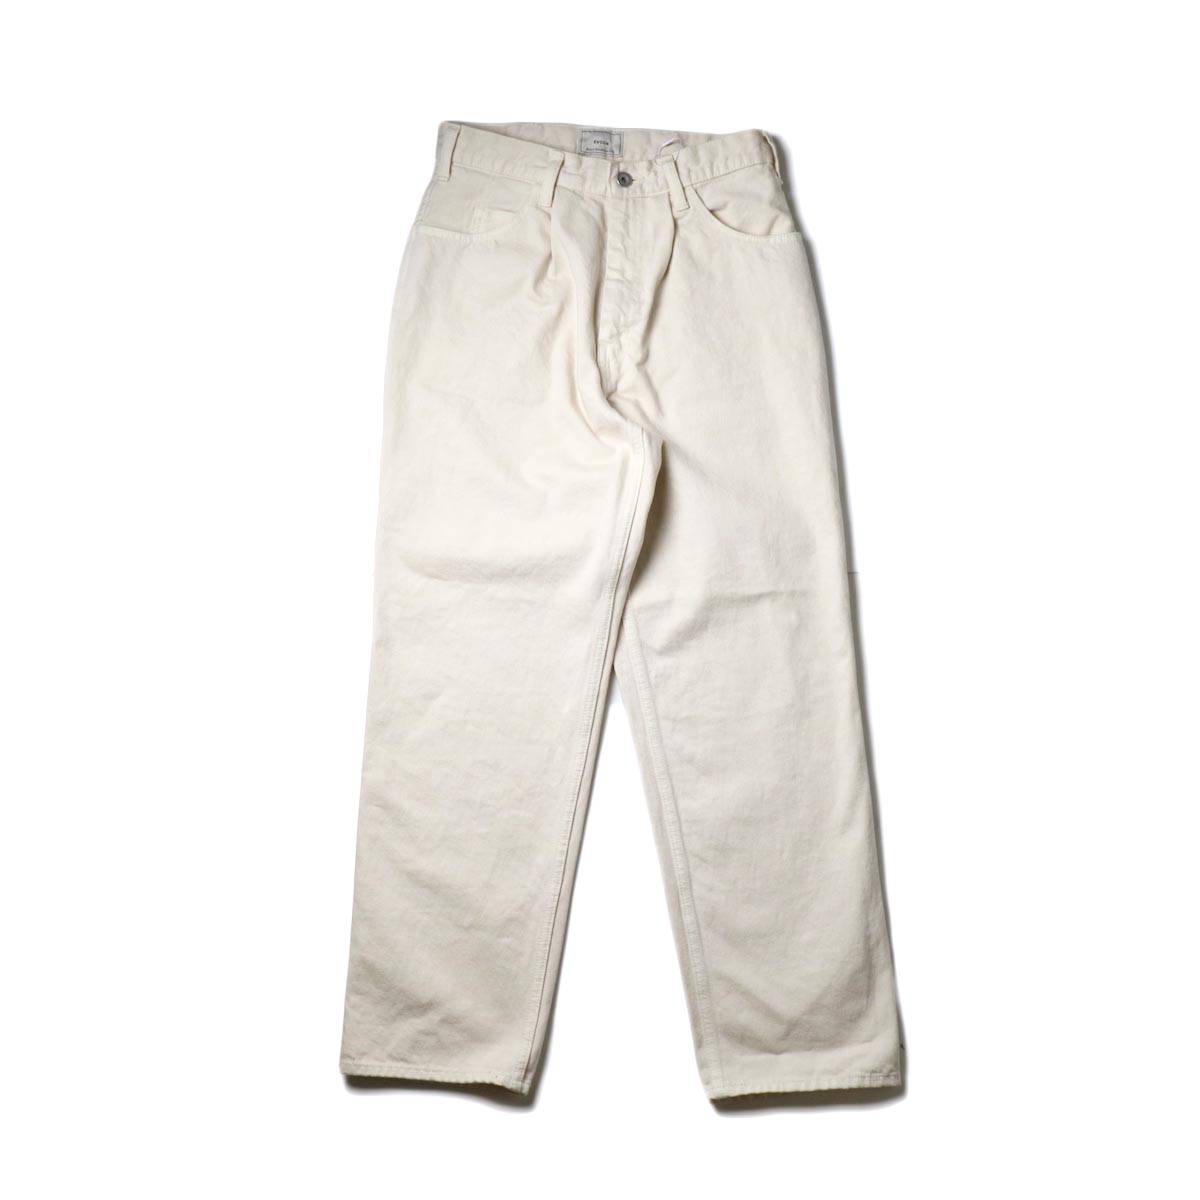 EVCON / 5POCKET TUCK WIDE DENIM PANTS (Ecru)